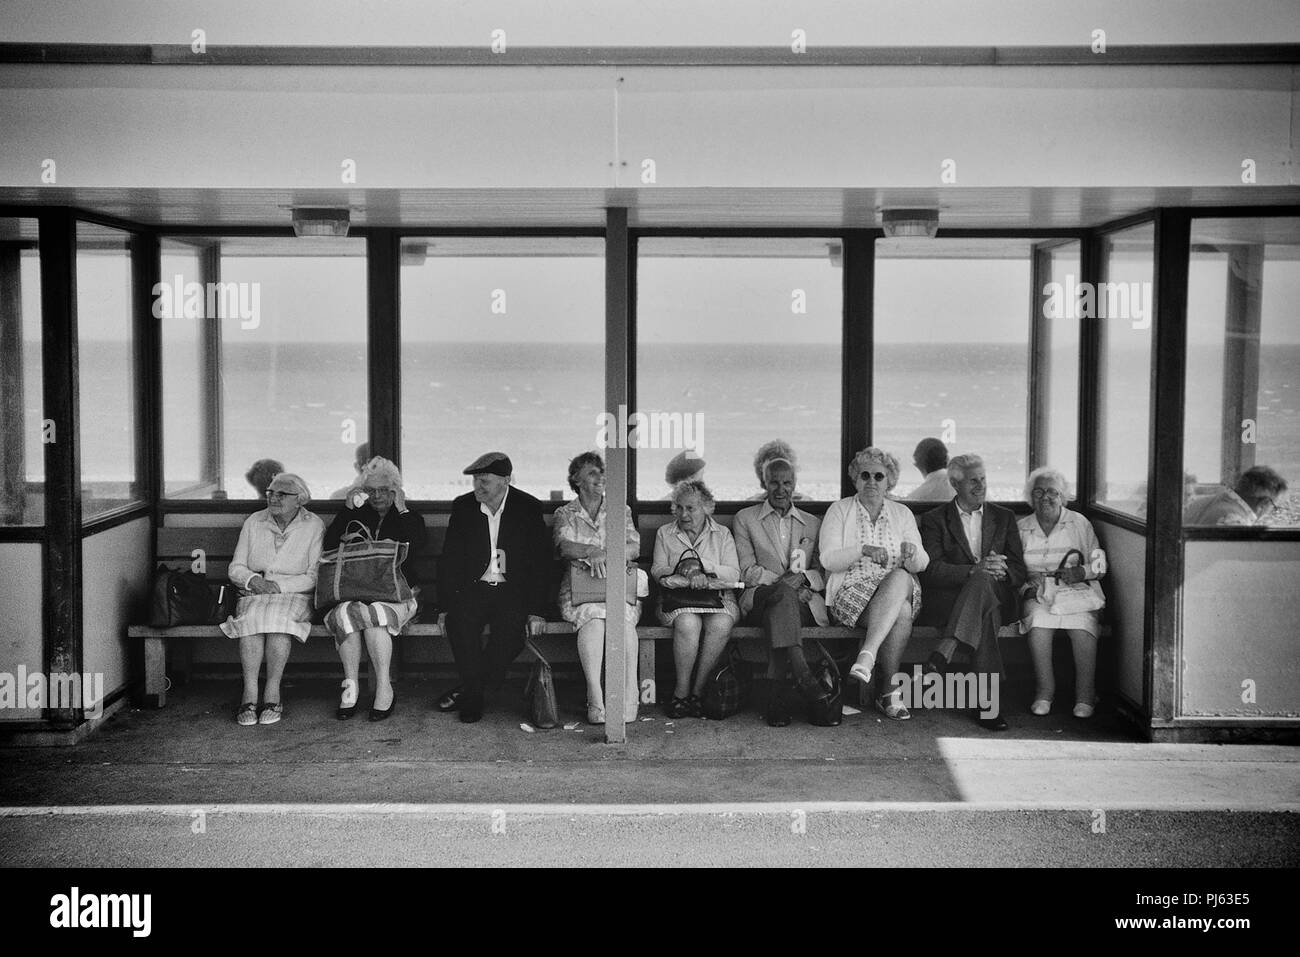 Seafront shelter, Margate, Thanet, England, UK. Circa 1980's - Stock Image